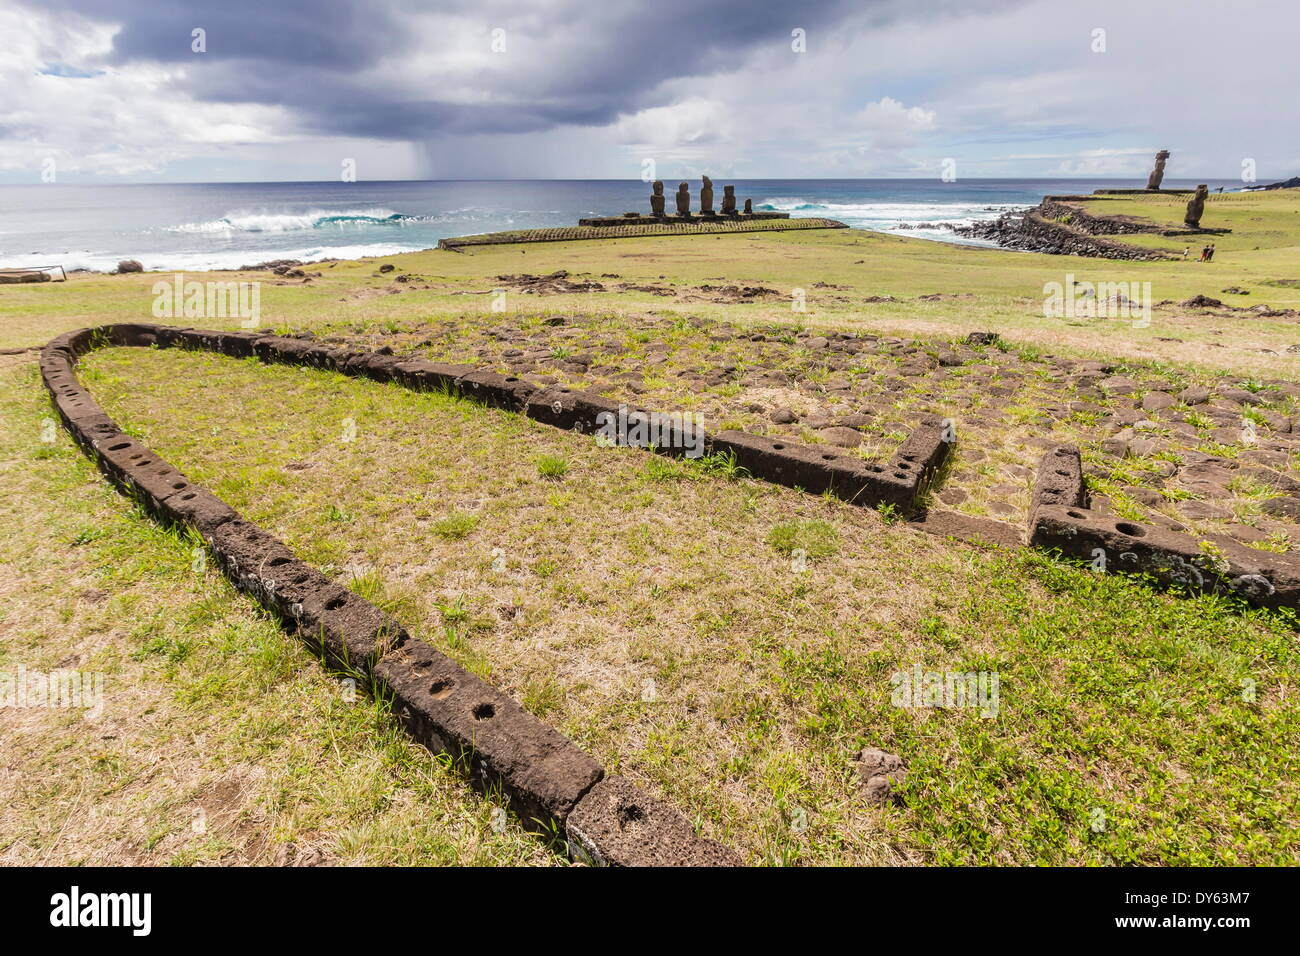 House foundation and sevem moai in the Tahai Archaeological Zone on Easter Island (Rapa Nui), UNESCO Site, Chile - Stock Image